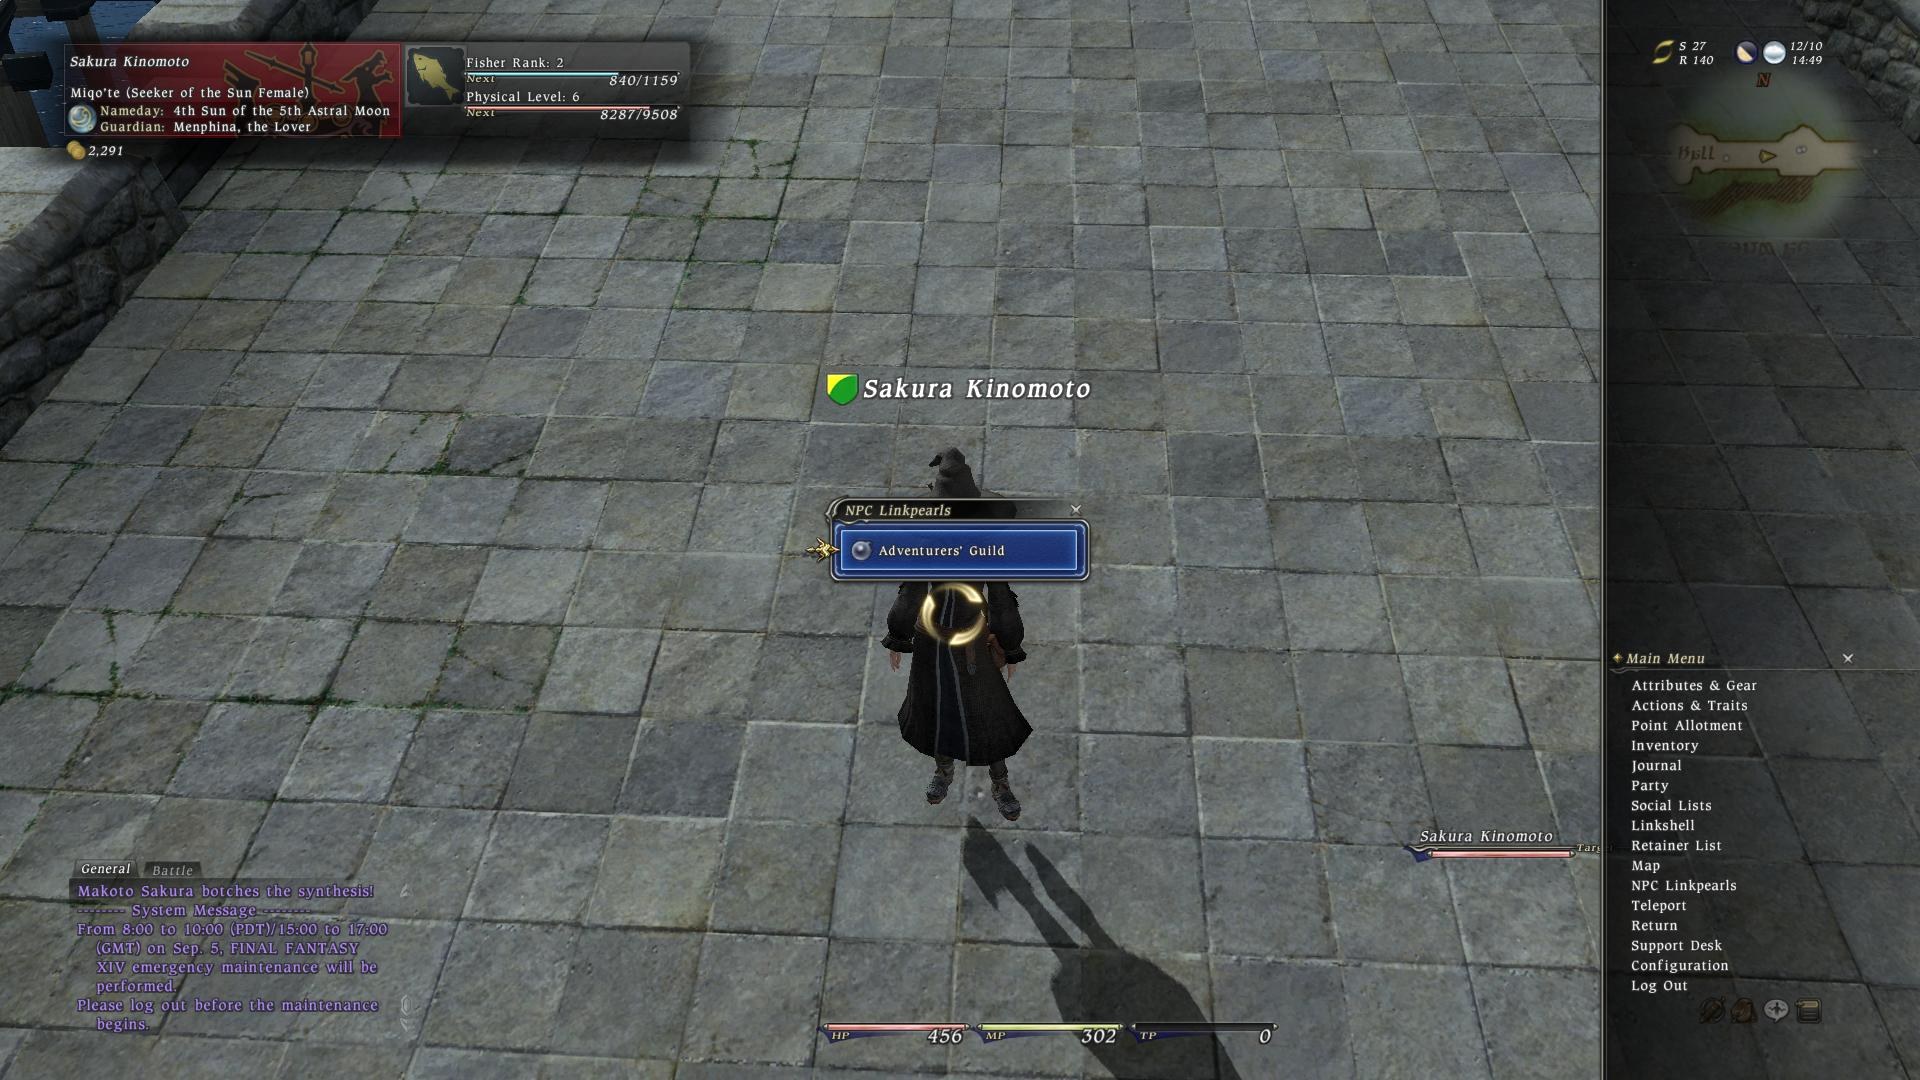 Final Fantasy XIV Daily Digest #2 - 15